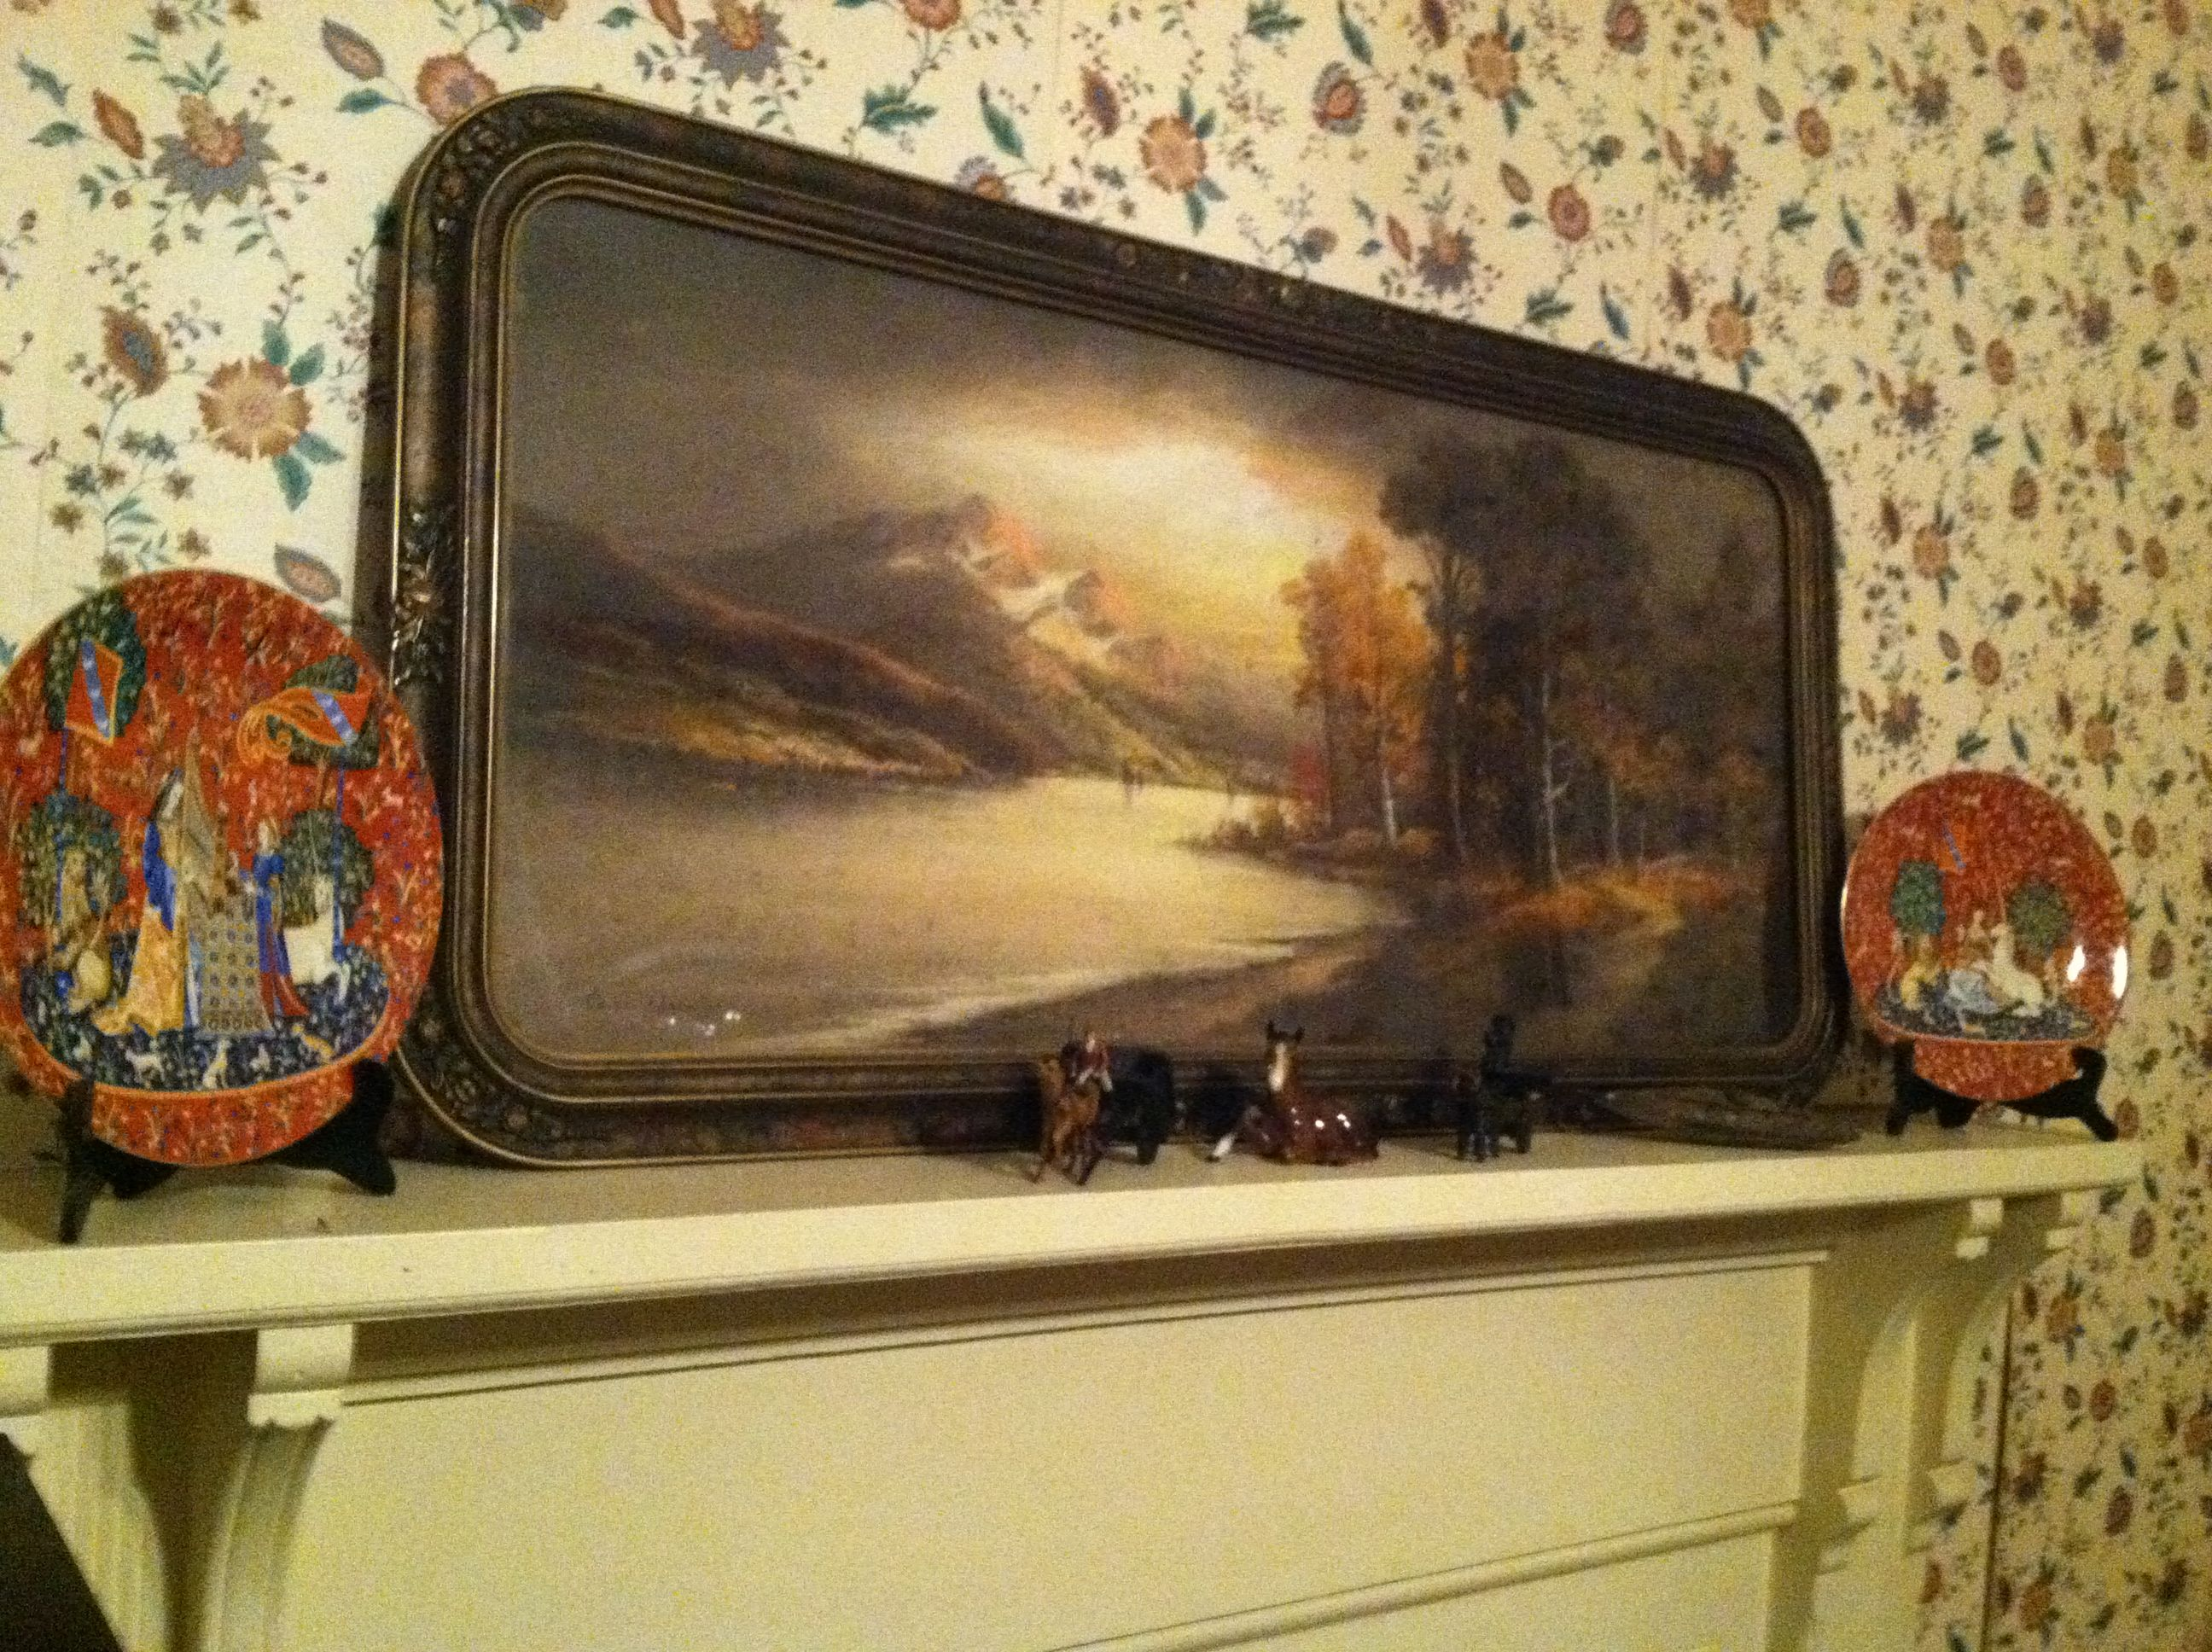 I moved this above the piano. This is a pastel chalk picture, meaning that it is not painted but chalk kind of like chalk on a chalkboard. It is not something you see everyday! My mother had several of these and I have always admired them. There are two in this room. It probably dates back from the mid to late 1800s. The plates on each side are Limoge. I love the little antique toys on the mantel!